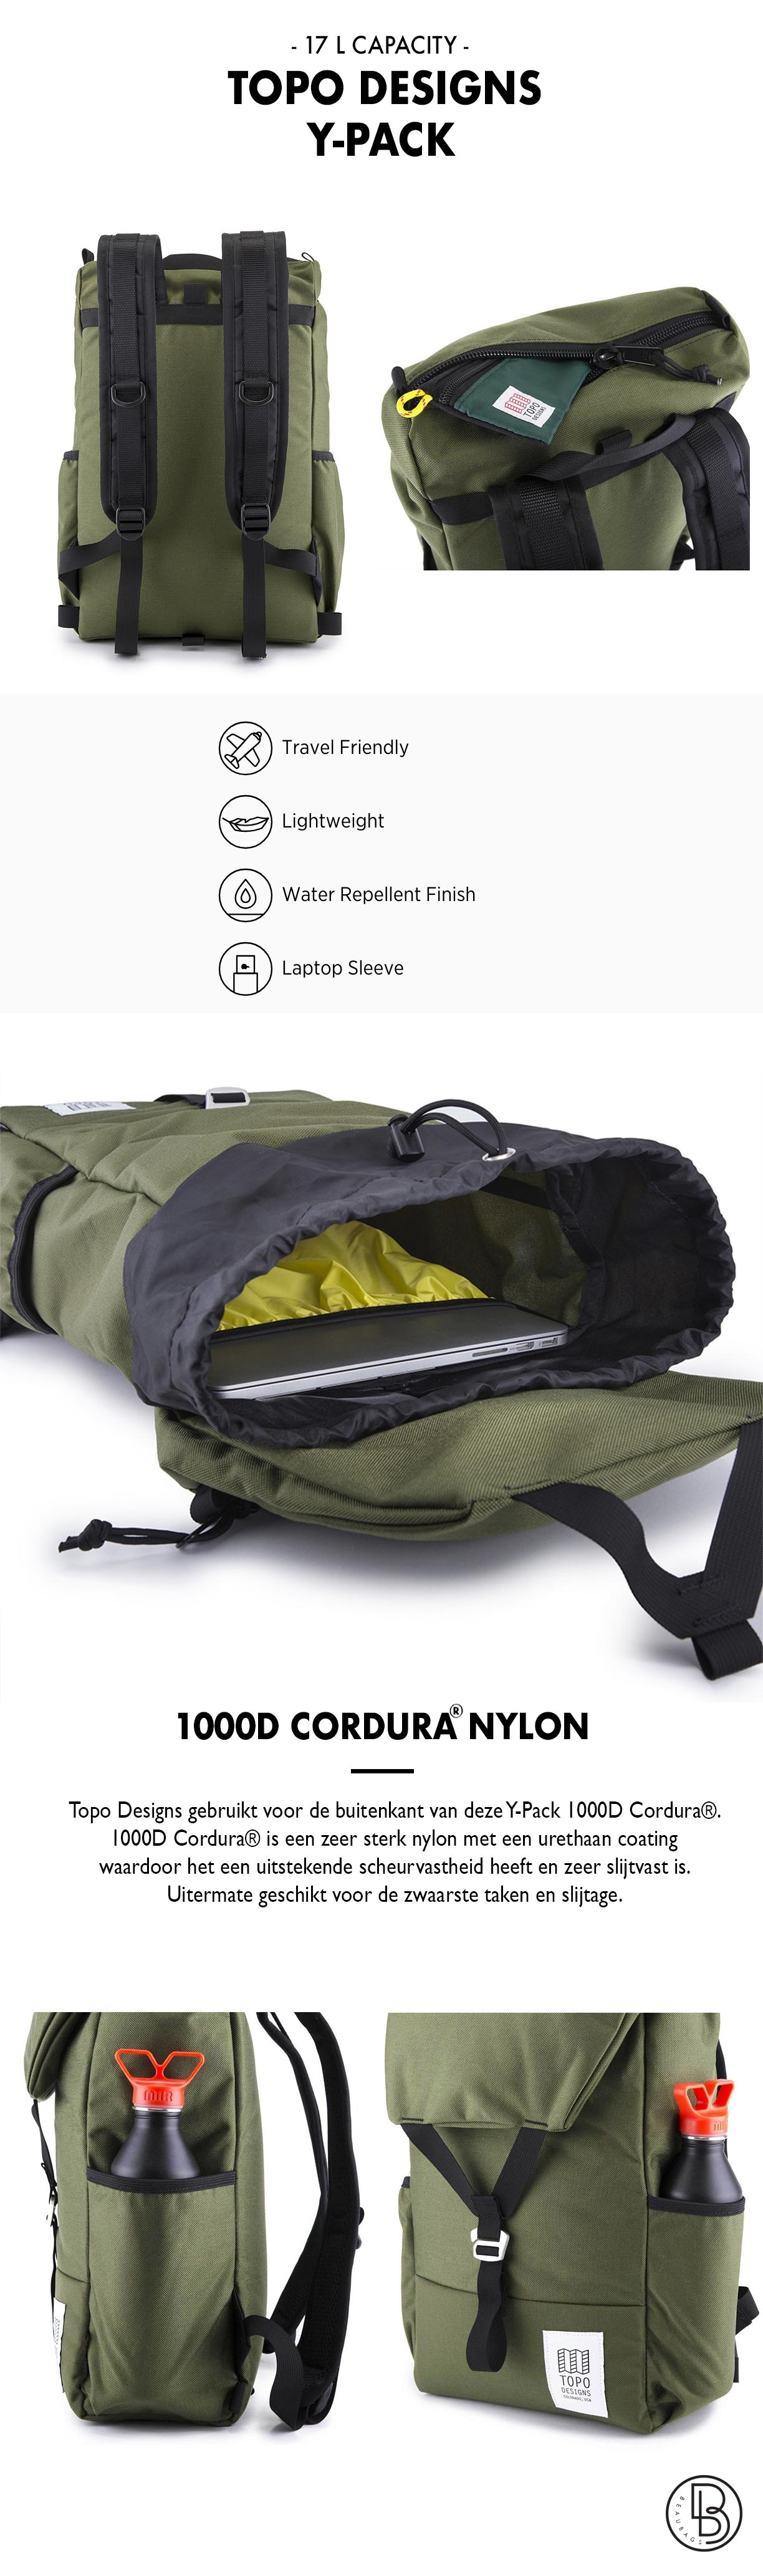 Topo Designs Y-Pack productinformatie